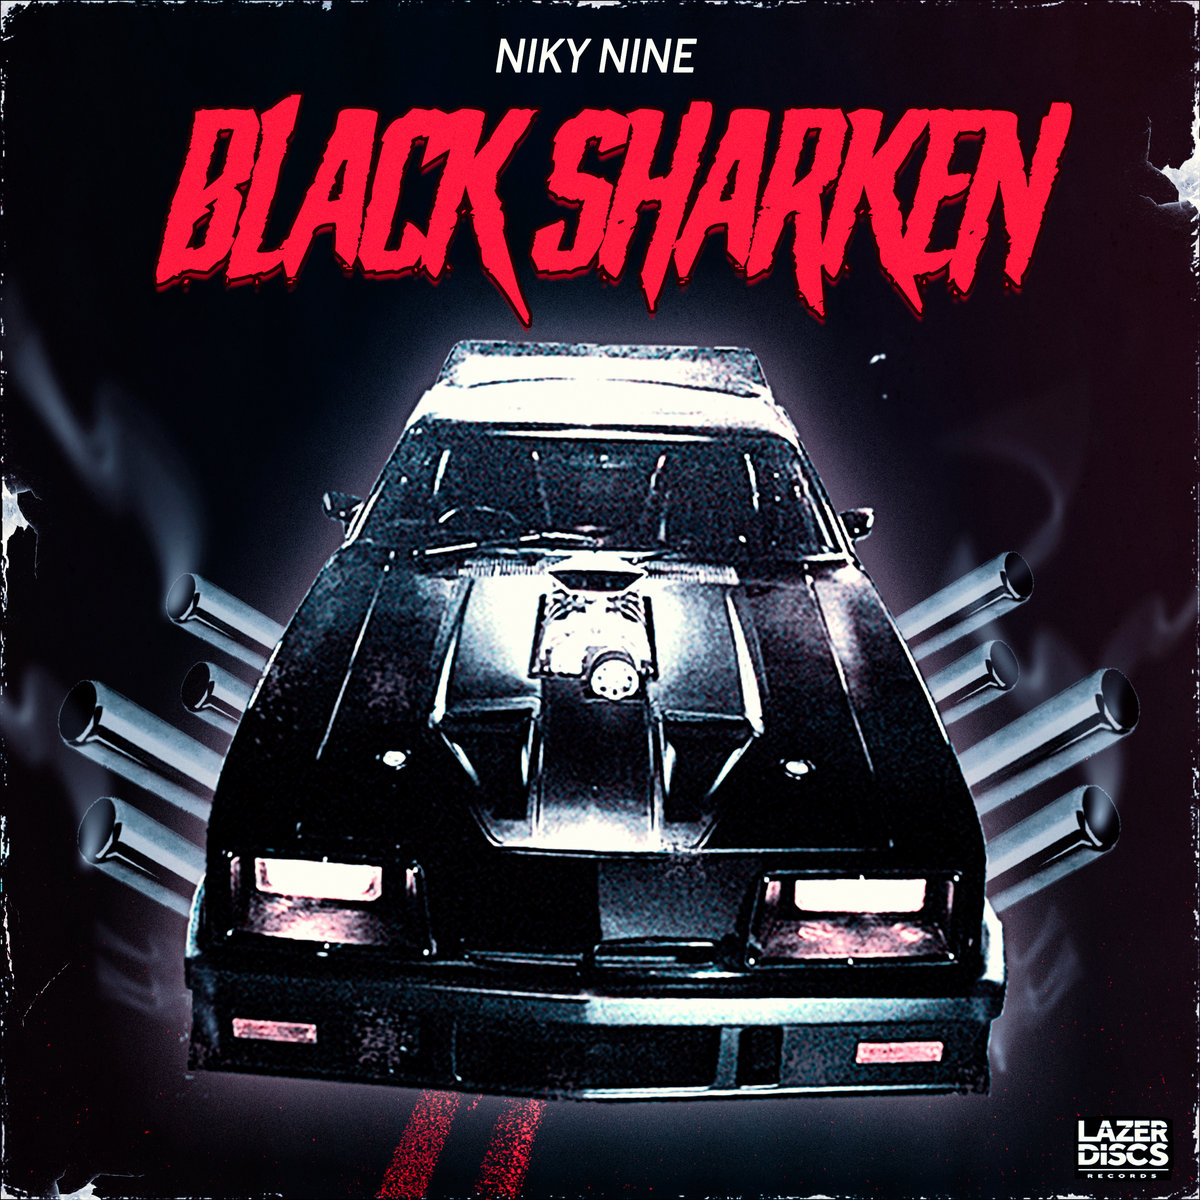 a2059632133 10 - Niky Nine's Black Sharken EP : a Fitting Finale to the Ozuwara Trilogy